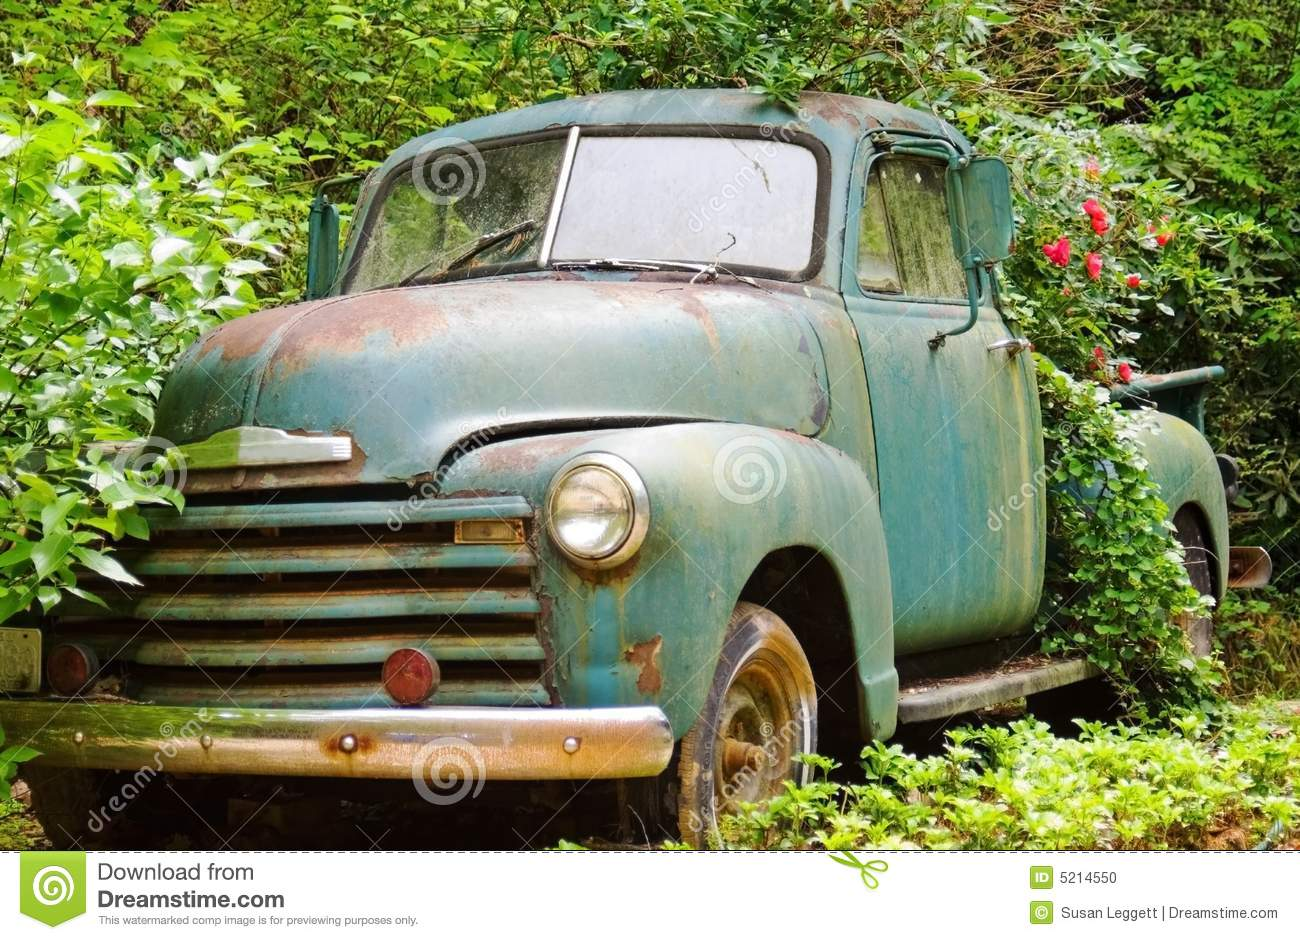 Vintage Truck Flower Planter Stock Photo Image Of Enjoy Abandoned 5214550